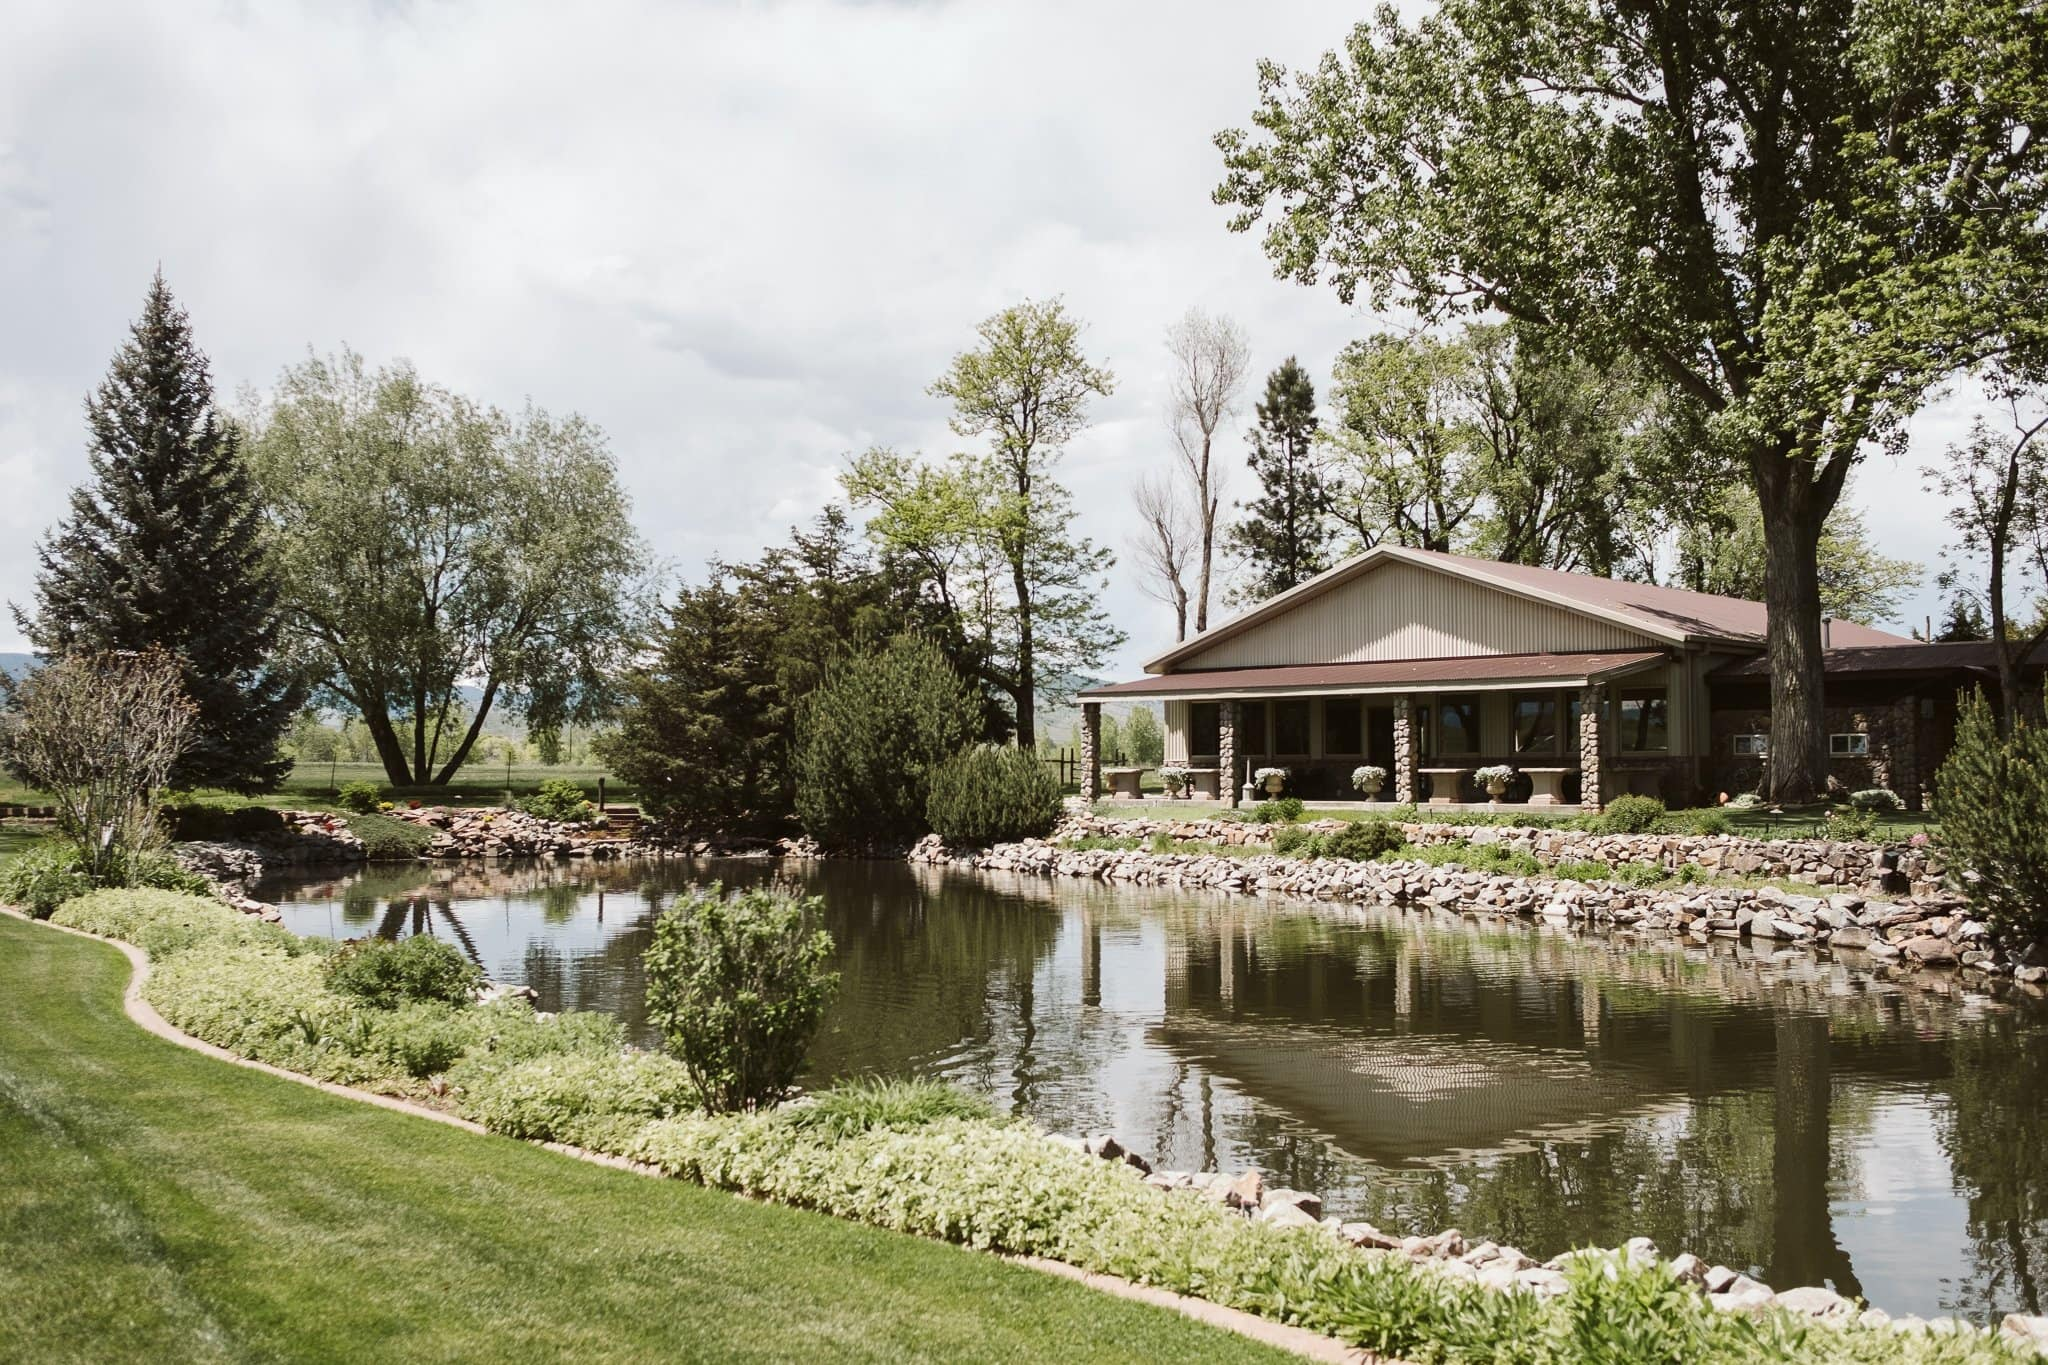 shupe-homestead-wedding-venue-boulder-9